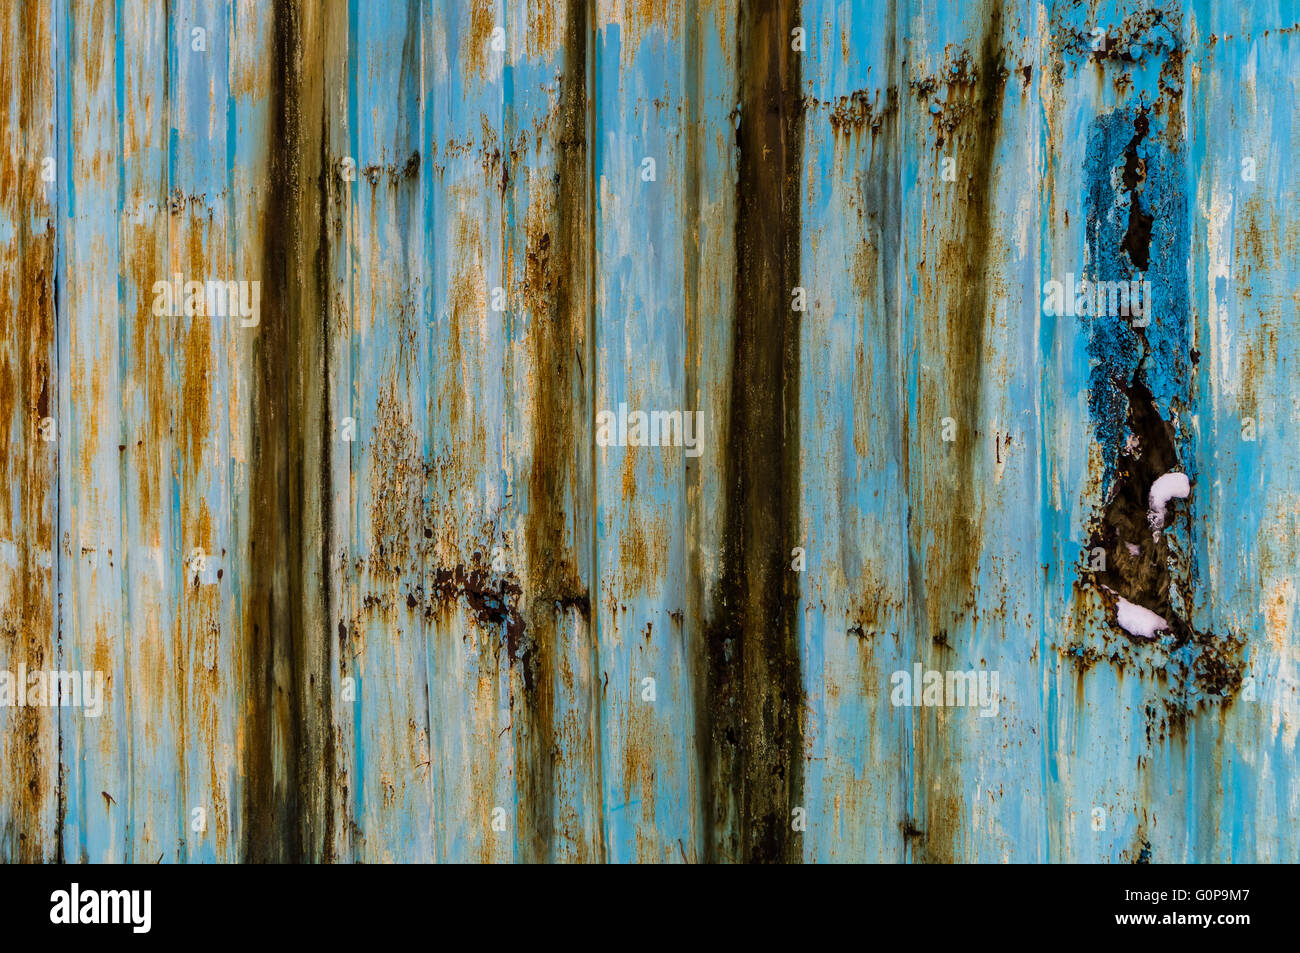 Old rusty bluish iron wall background with ice. Perspective, therefore 3-dimensional effect surface texture - Stock Image